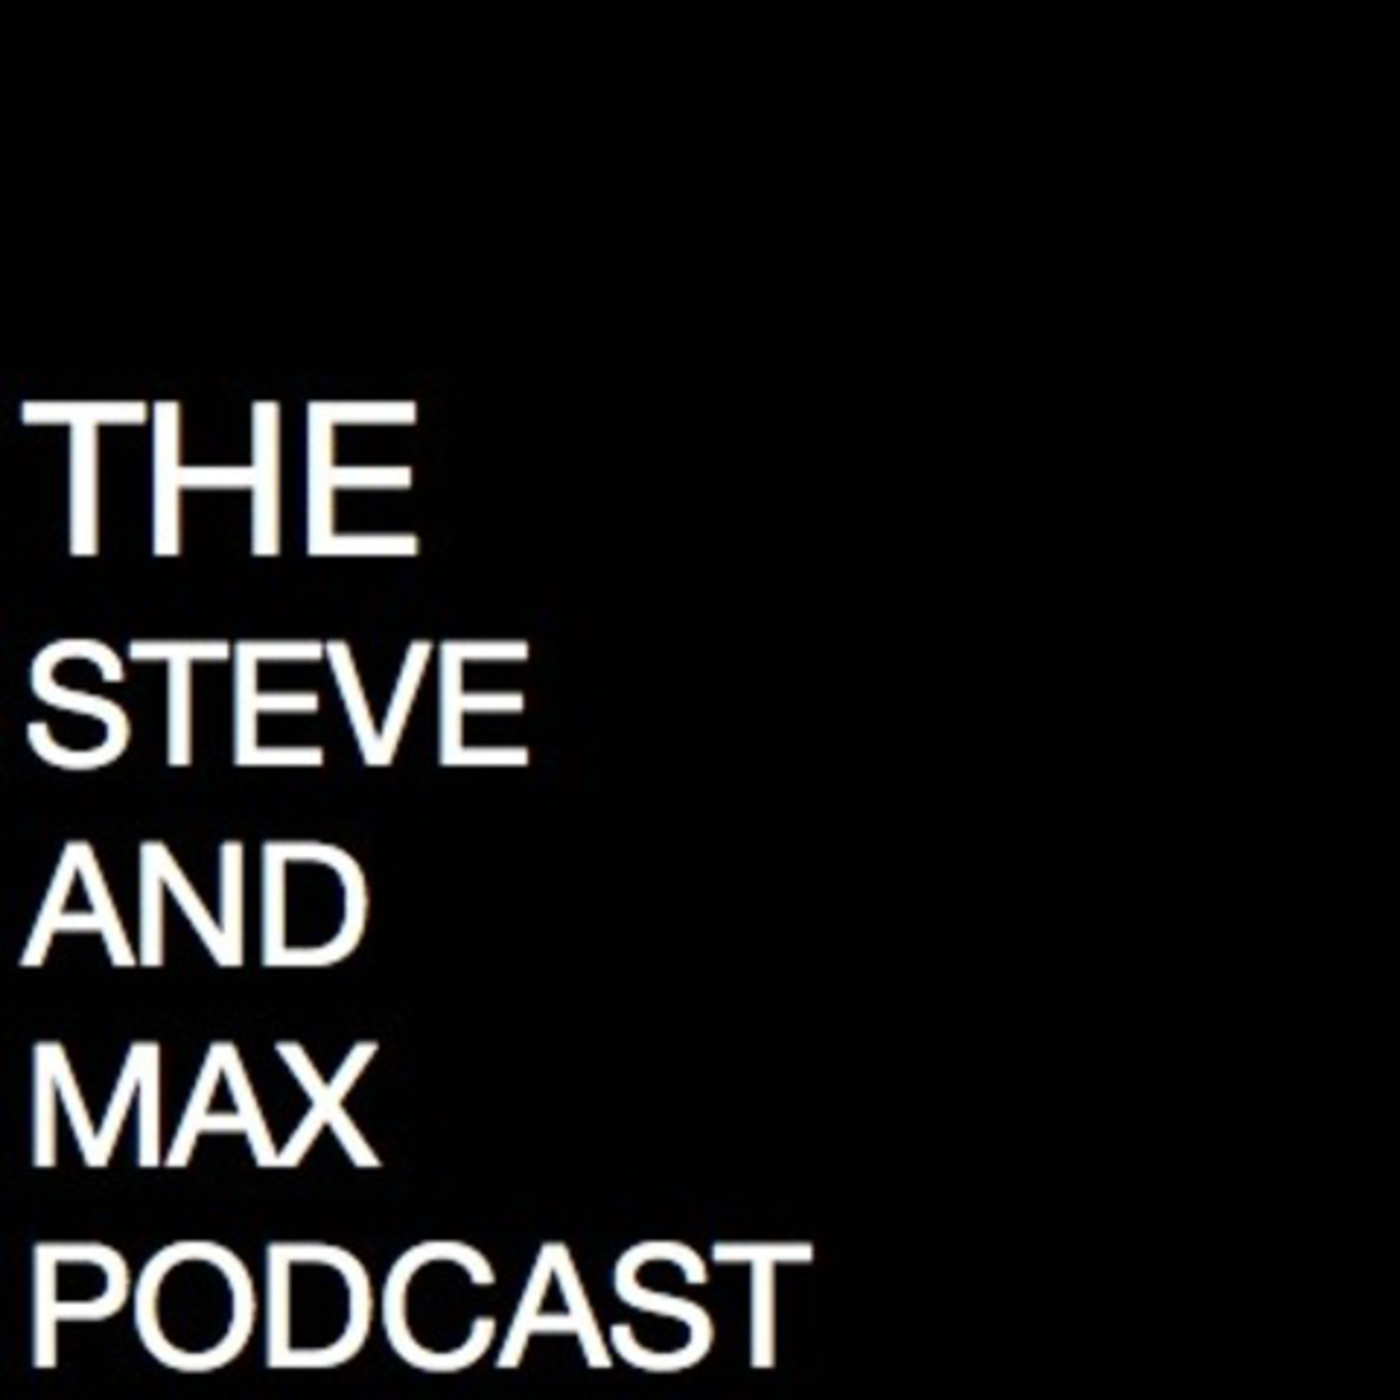 The Steve and Max Podcast